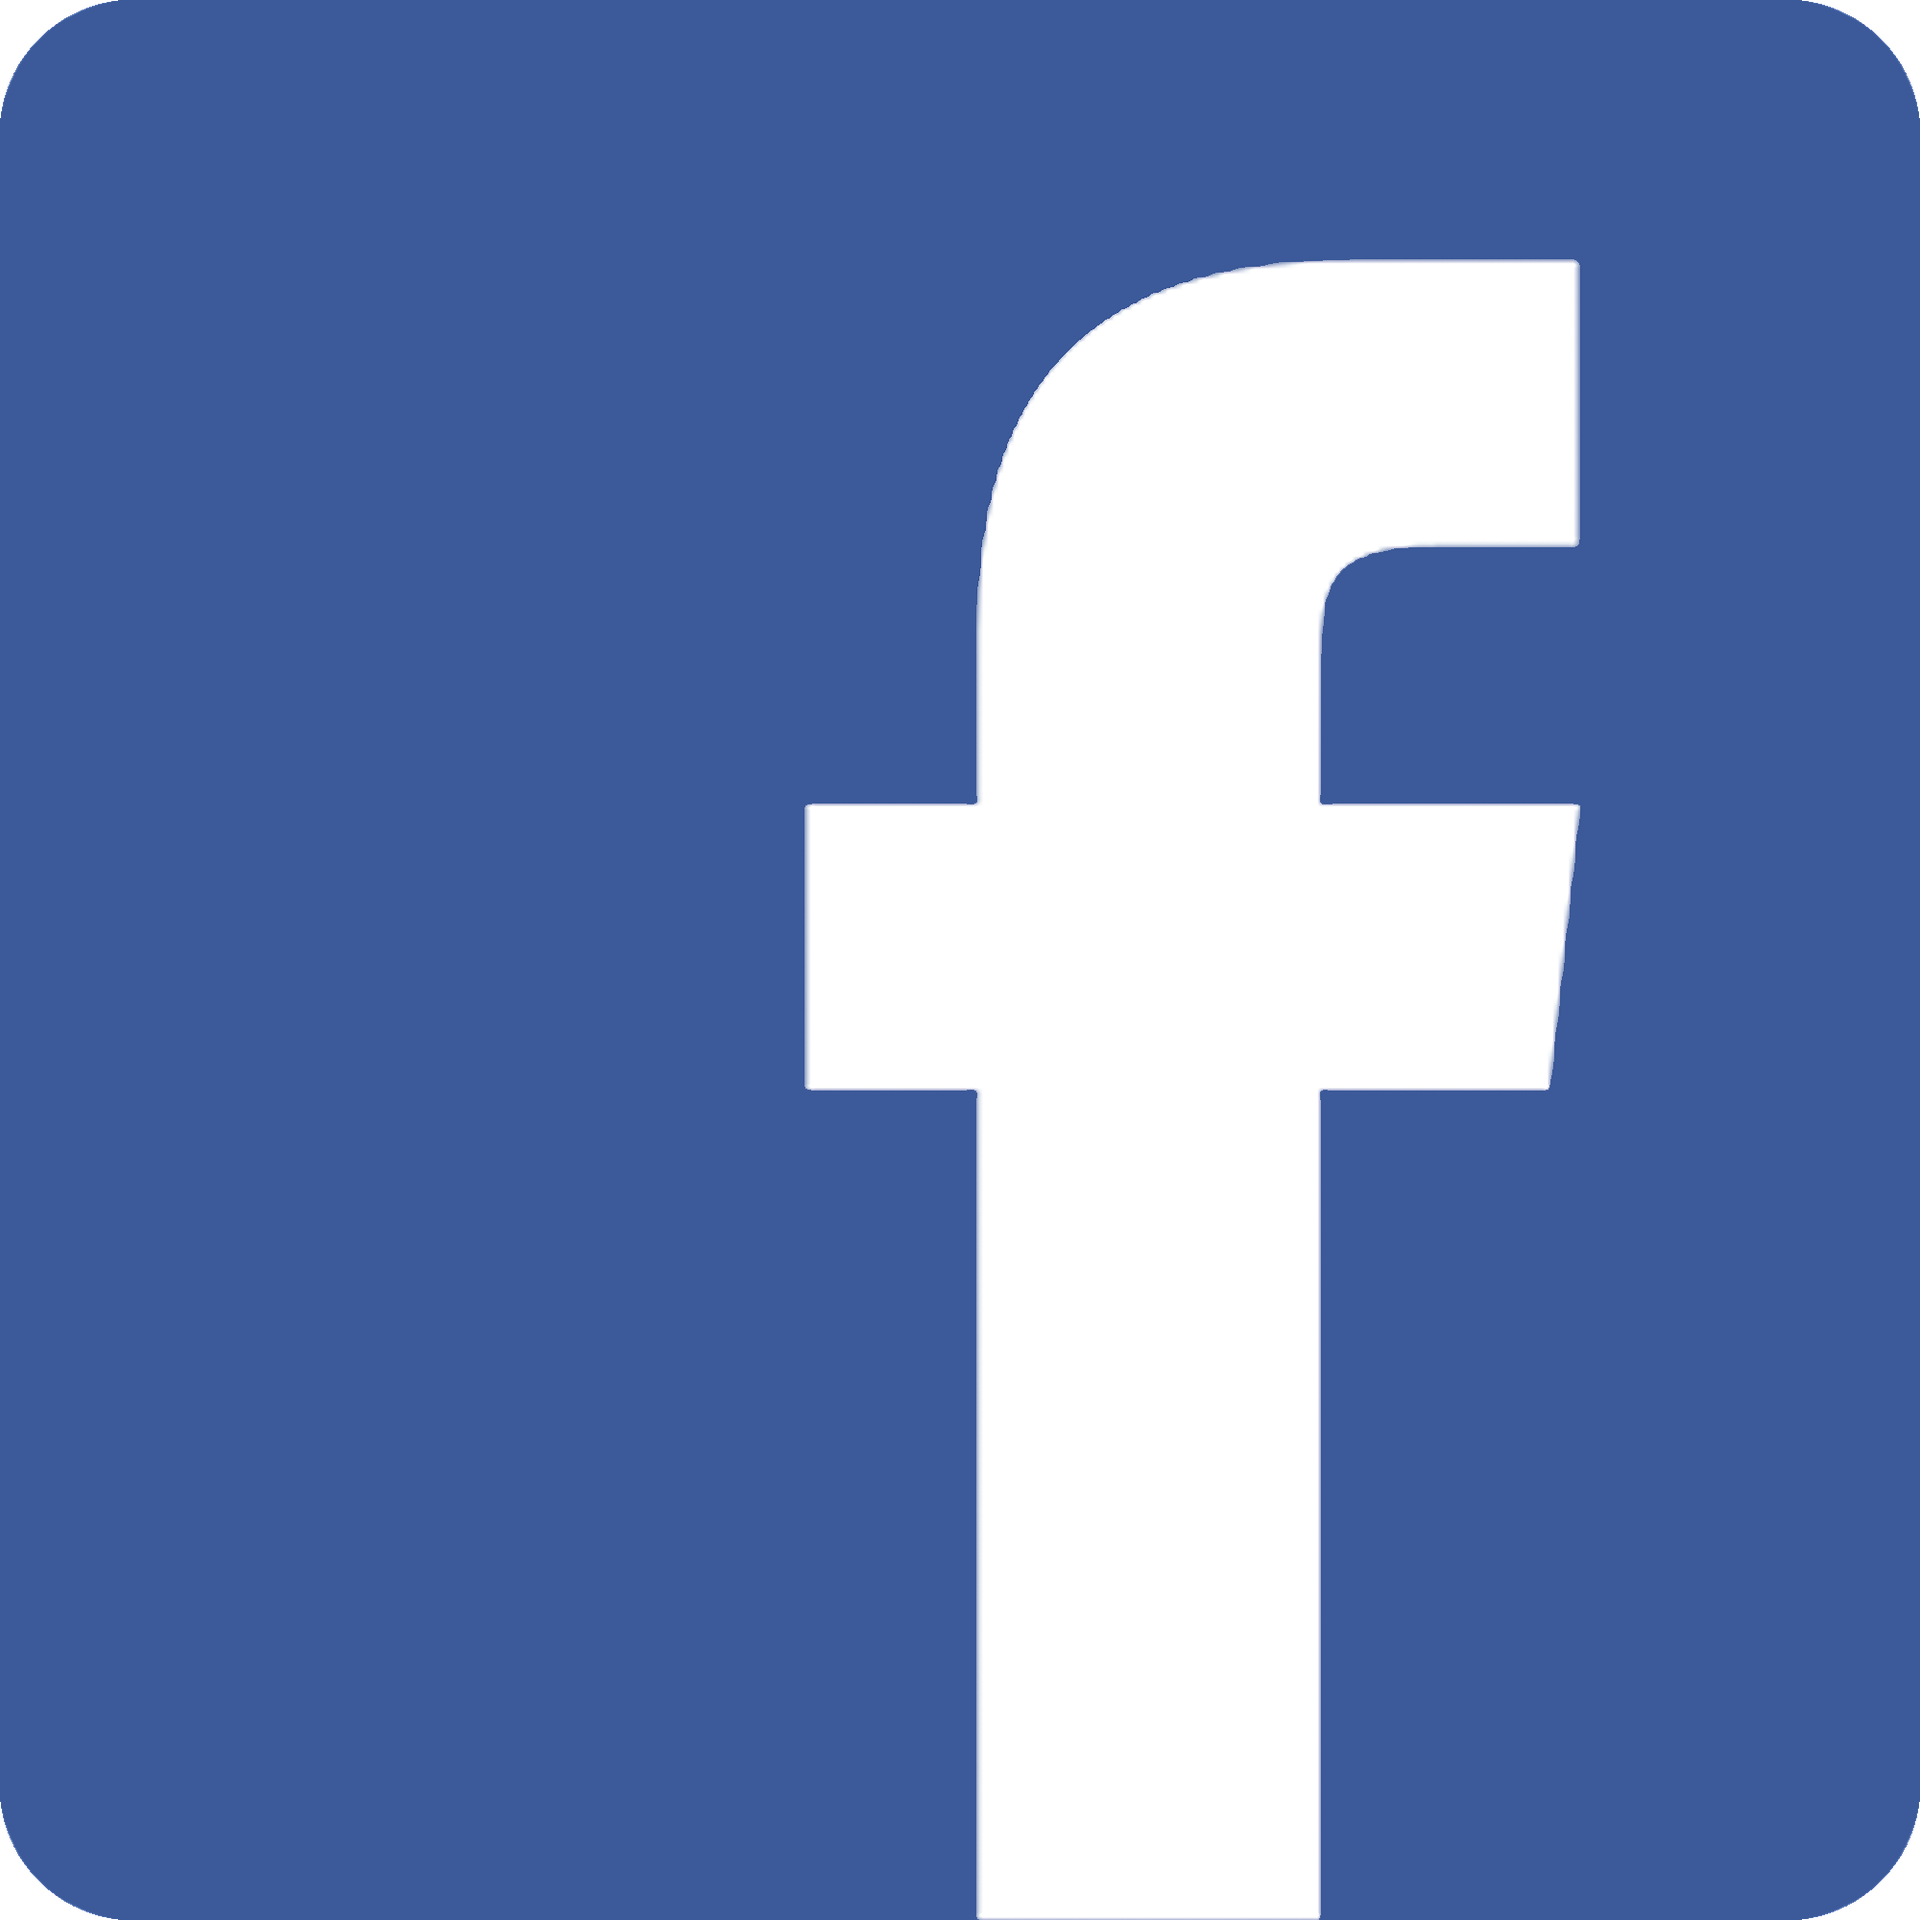 icone facebook png